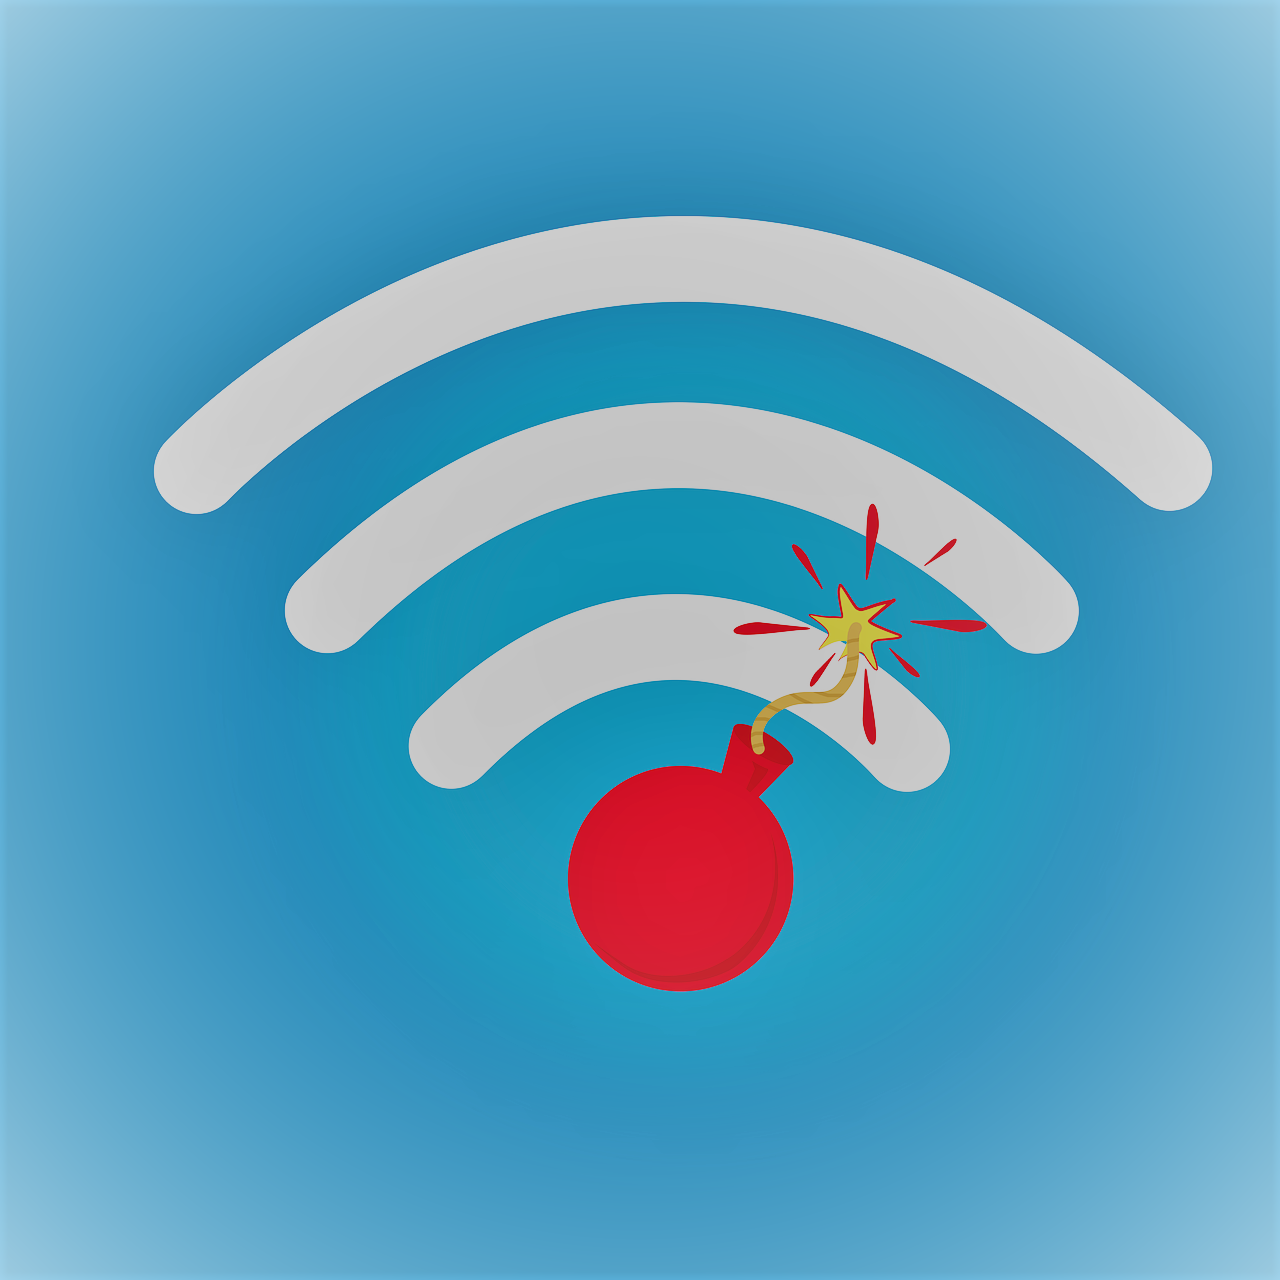 networks-2859534_1280.png